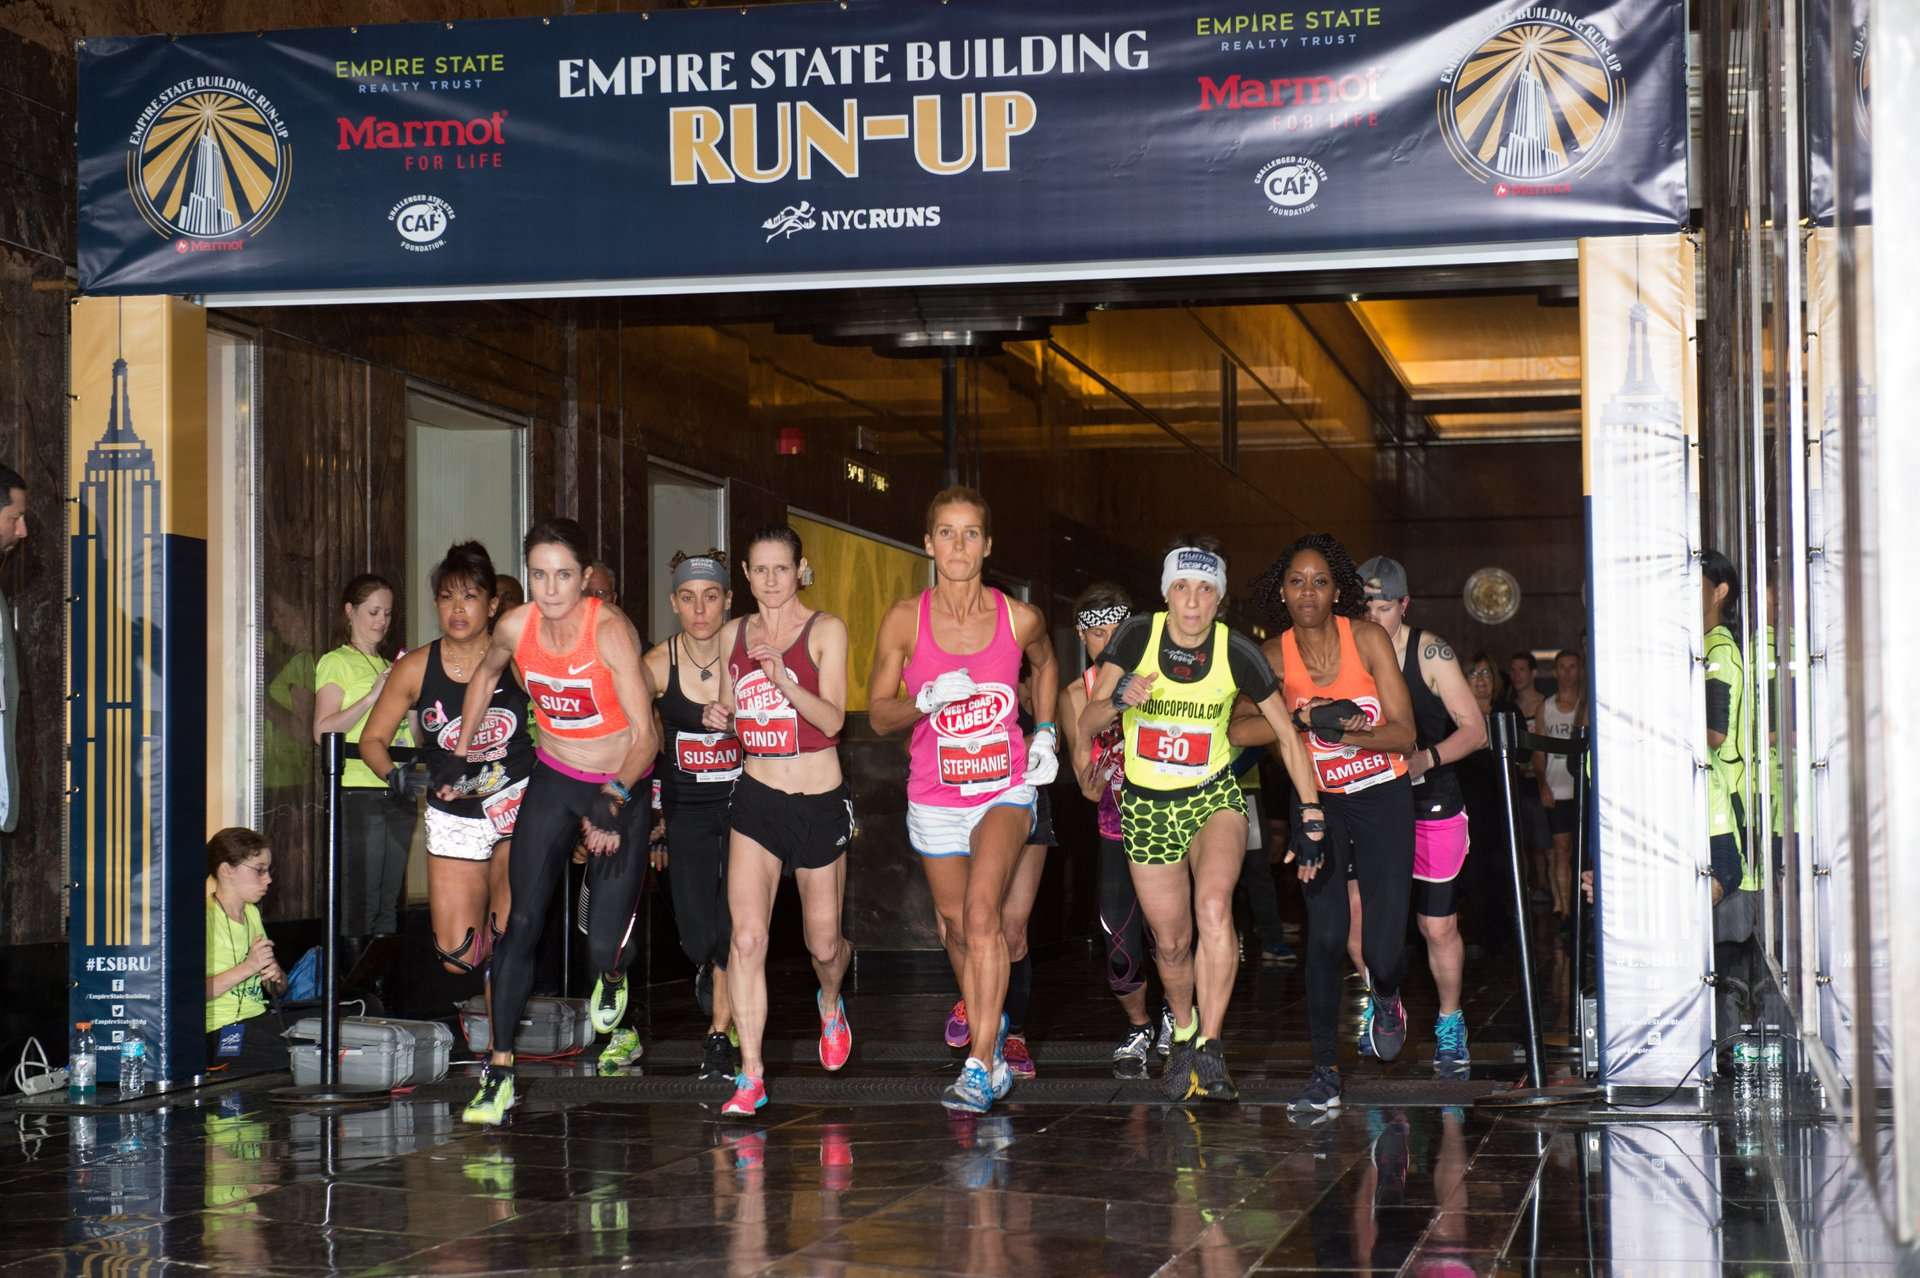 Empire State Building Run-Up in New York 2019 - Best Time